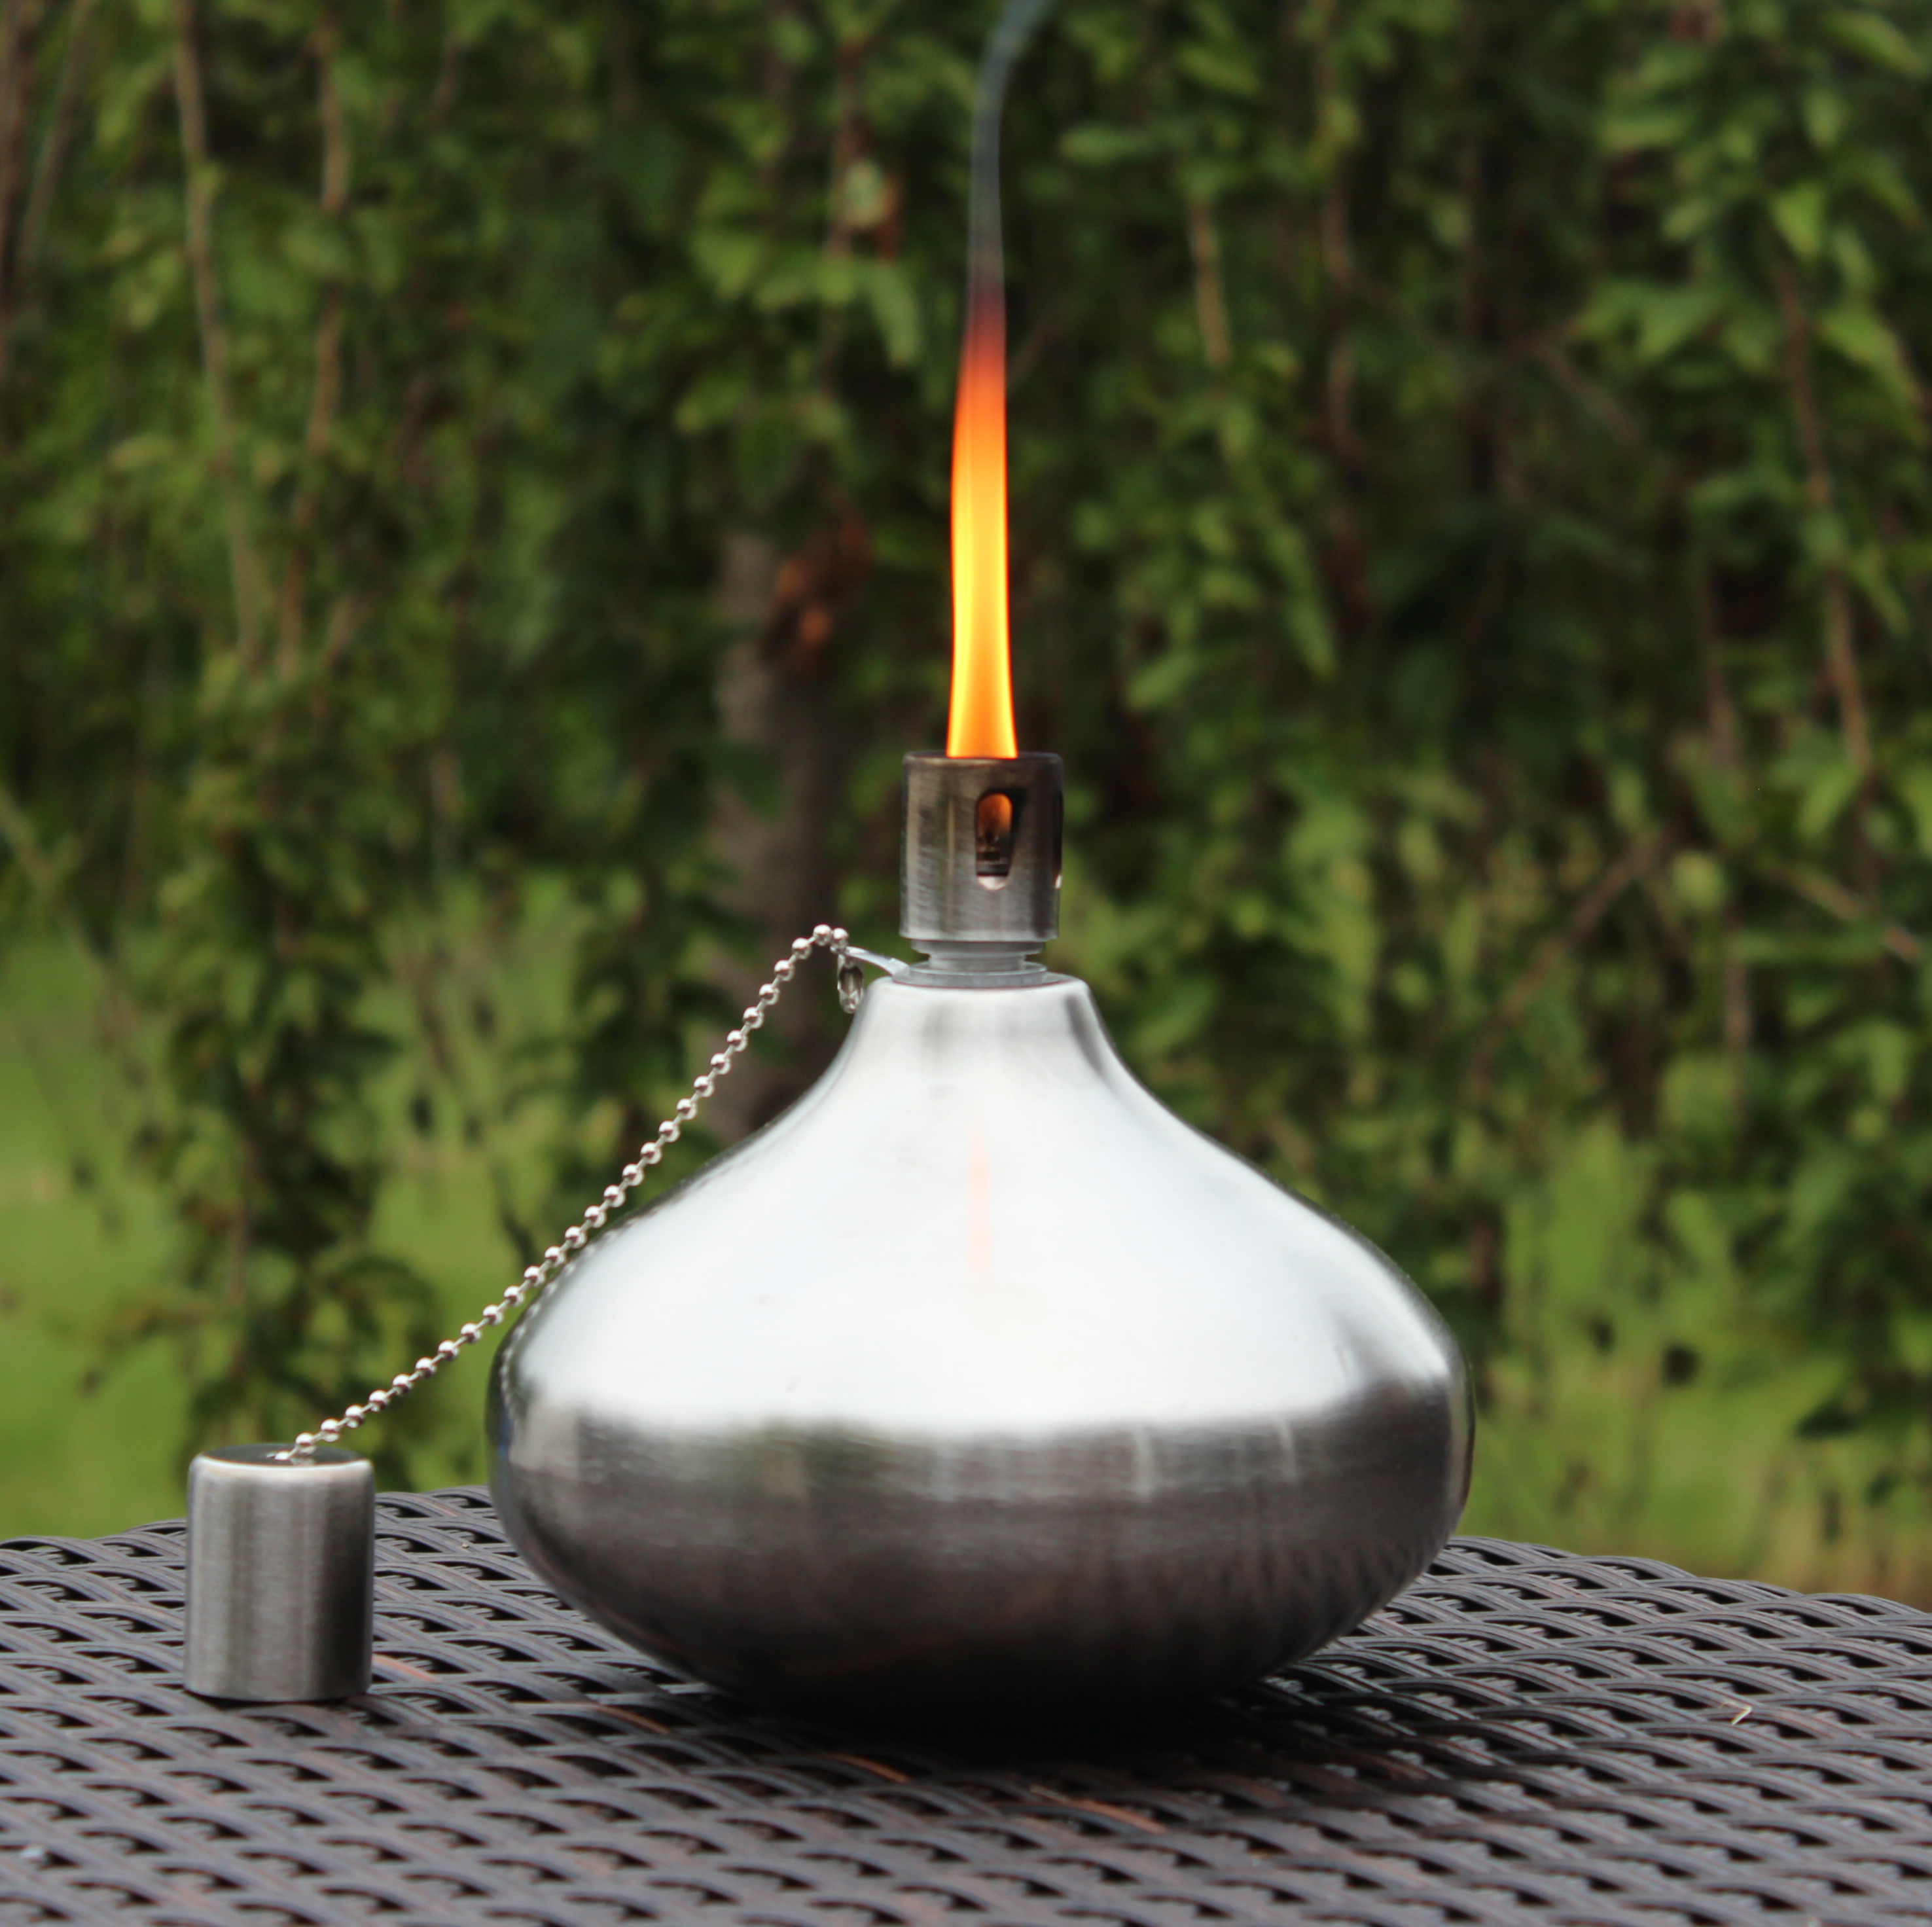 Incroyable Stainless Steel Teardrop Table Tiki Torch   SHG 209 ...